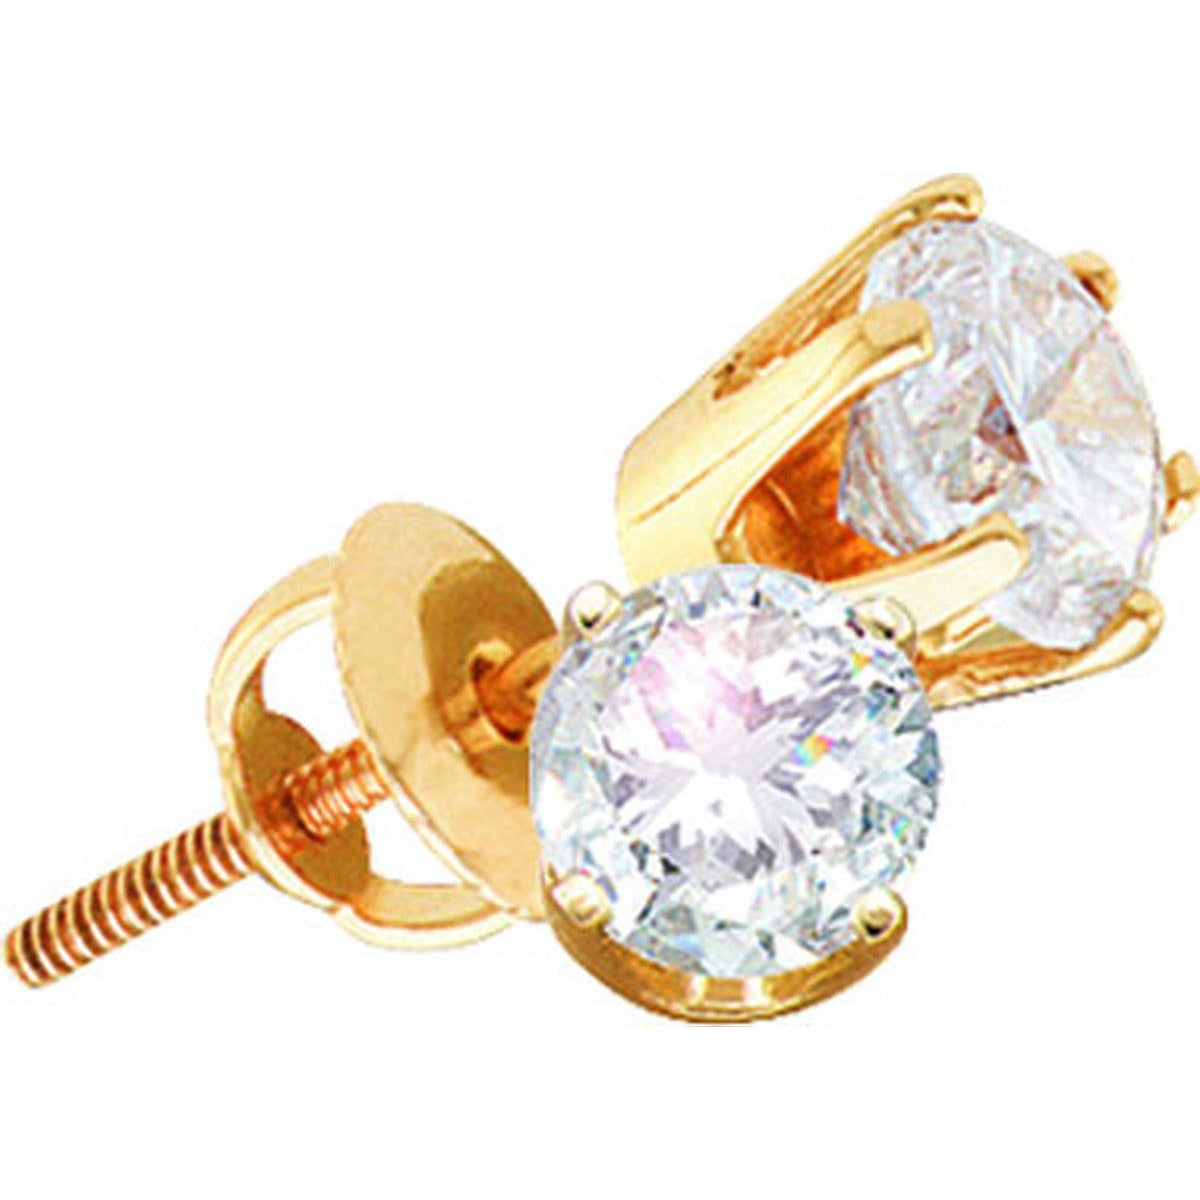 14kt Yellow Gold Womens Round Diamond I2 JK Solitaire Stud Earrings 1.00 Cttw 112671 - shirin-diamonds